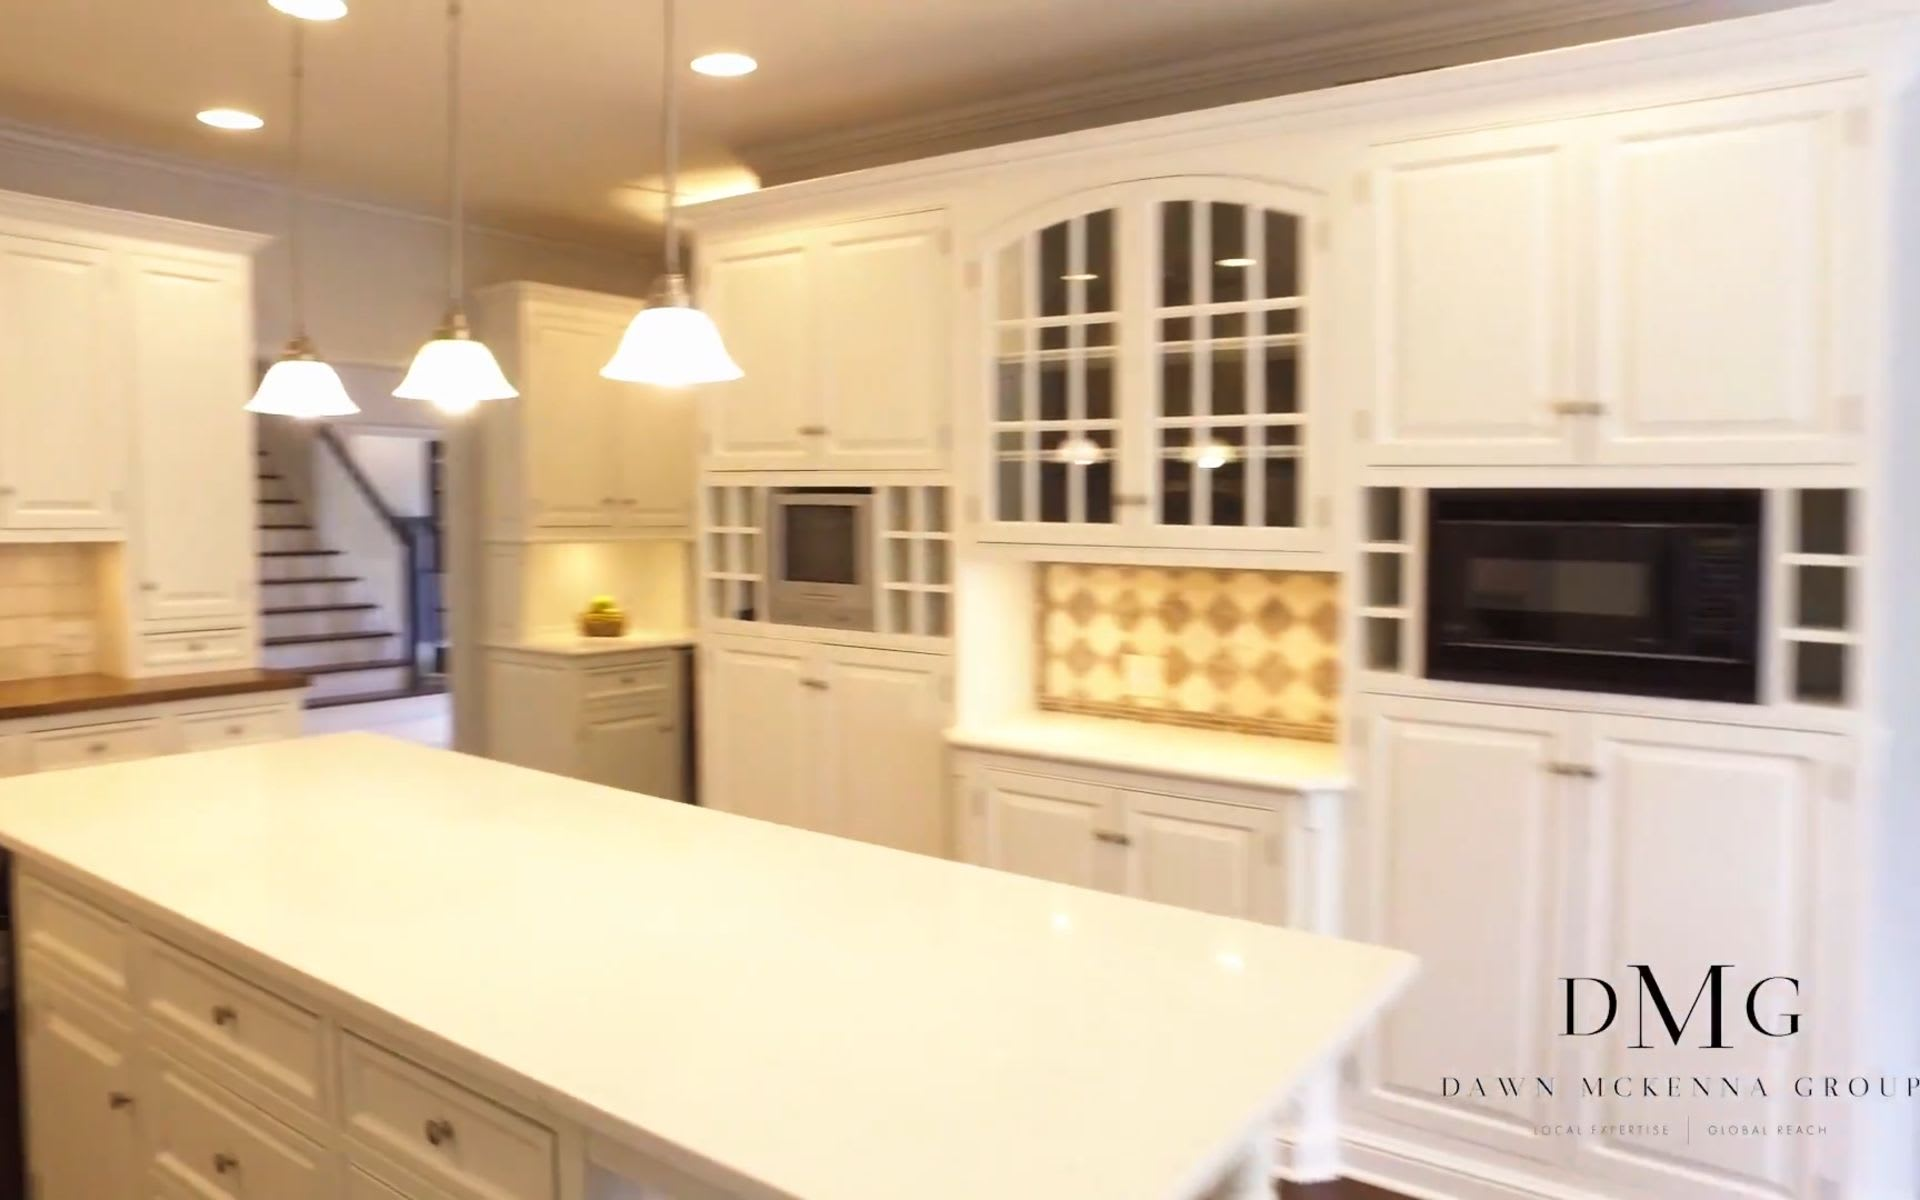 656 EAST 6TH STREET, HINSDALE, IL DAWN MCKENNA GROUP video preview